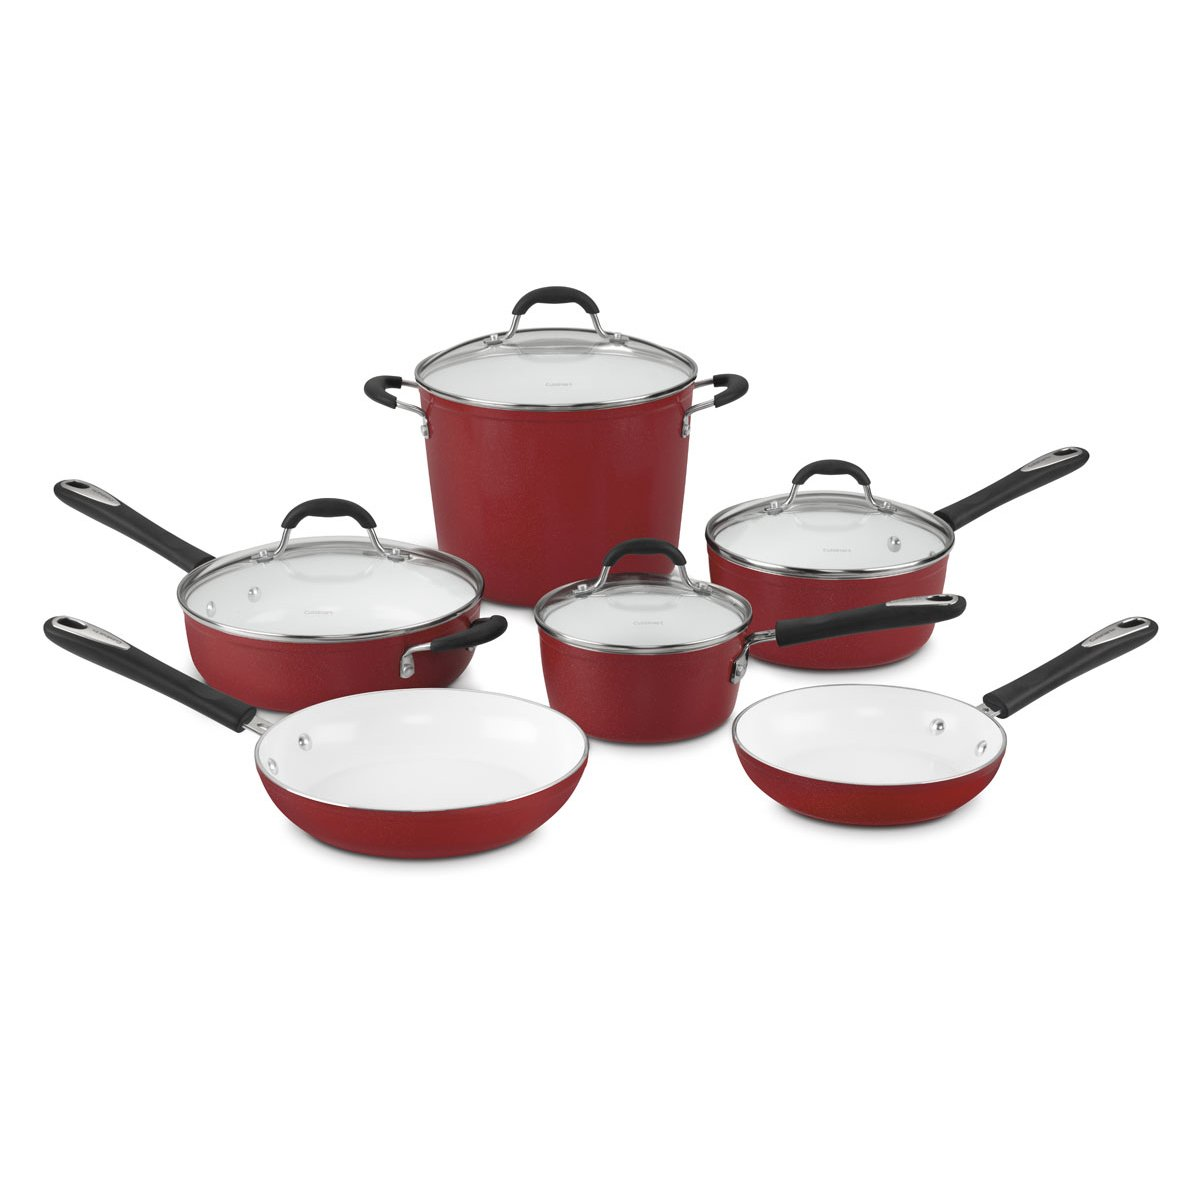 Colorful Forged Aluminum Cookware Set in Ceramic Non Stick ... |Colorful Ceramic Cookware